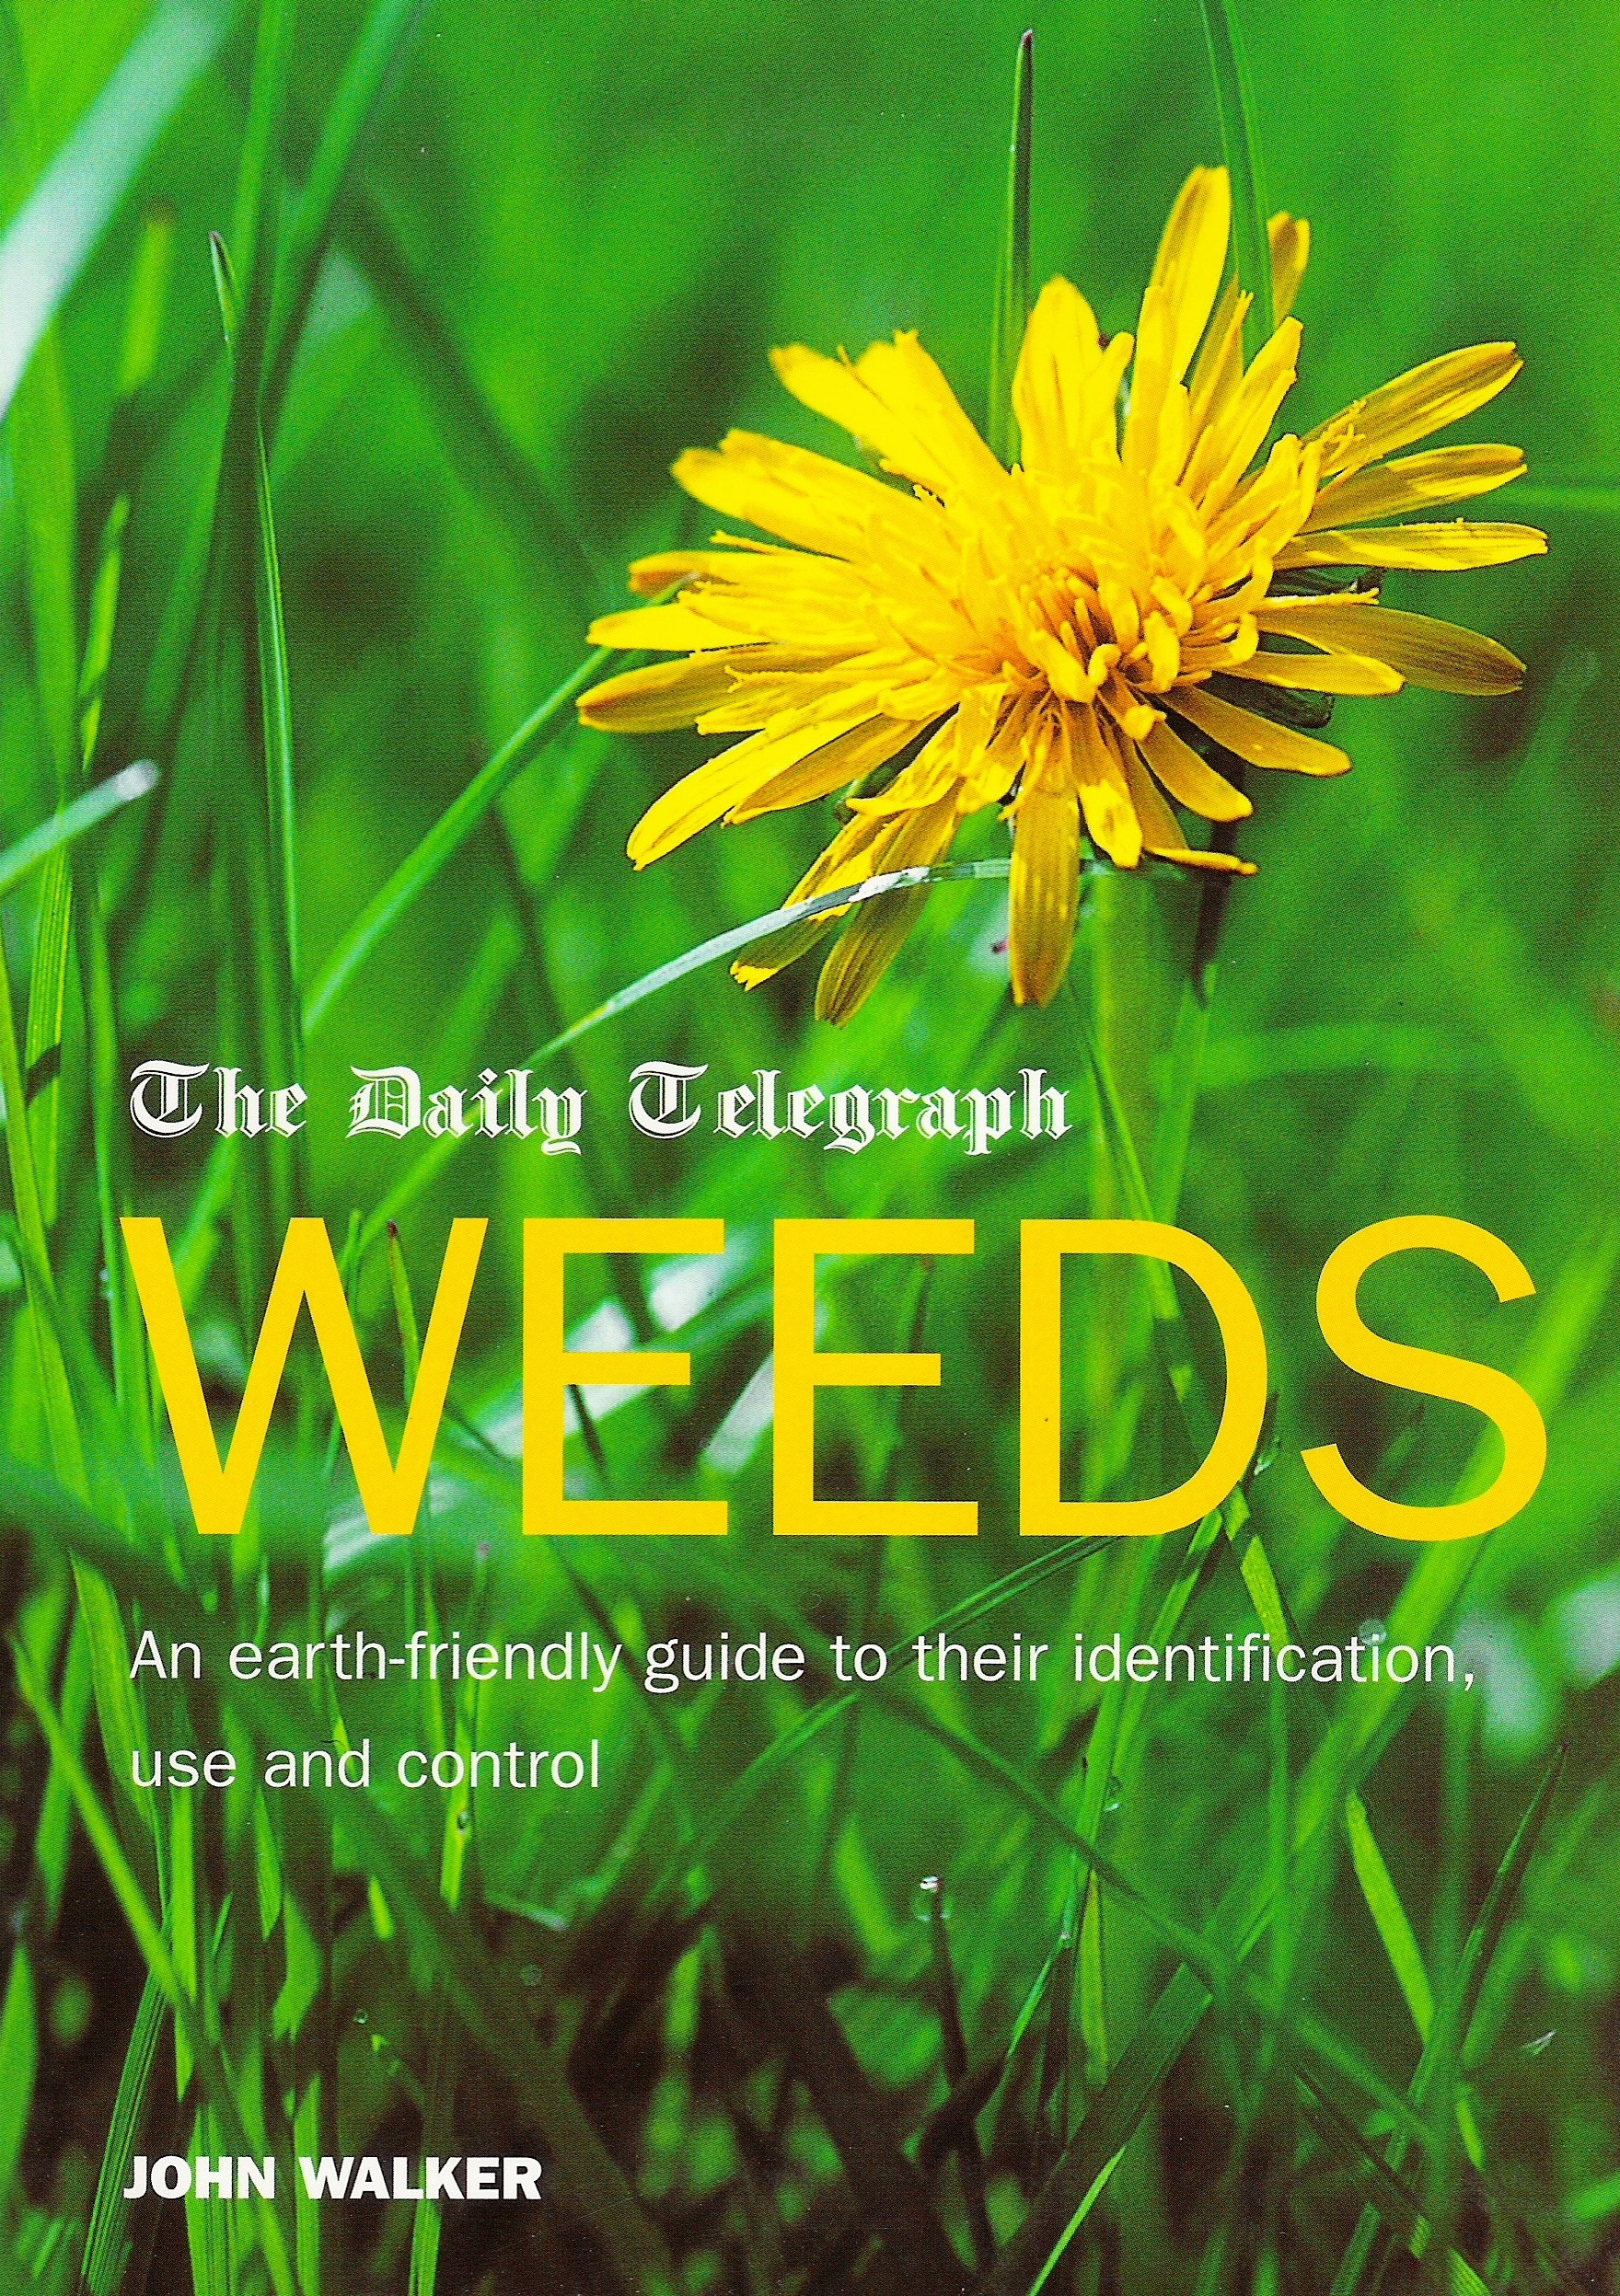 book-about-controlling-garden-weeds-without-using-chemical-weedkillers-earth-friendly-techniques